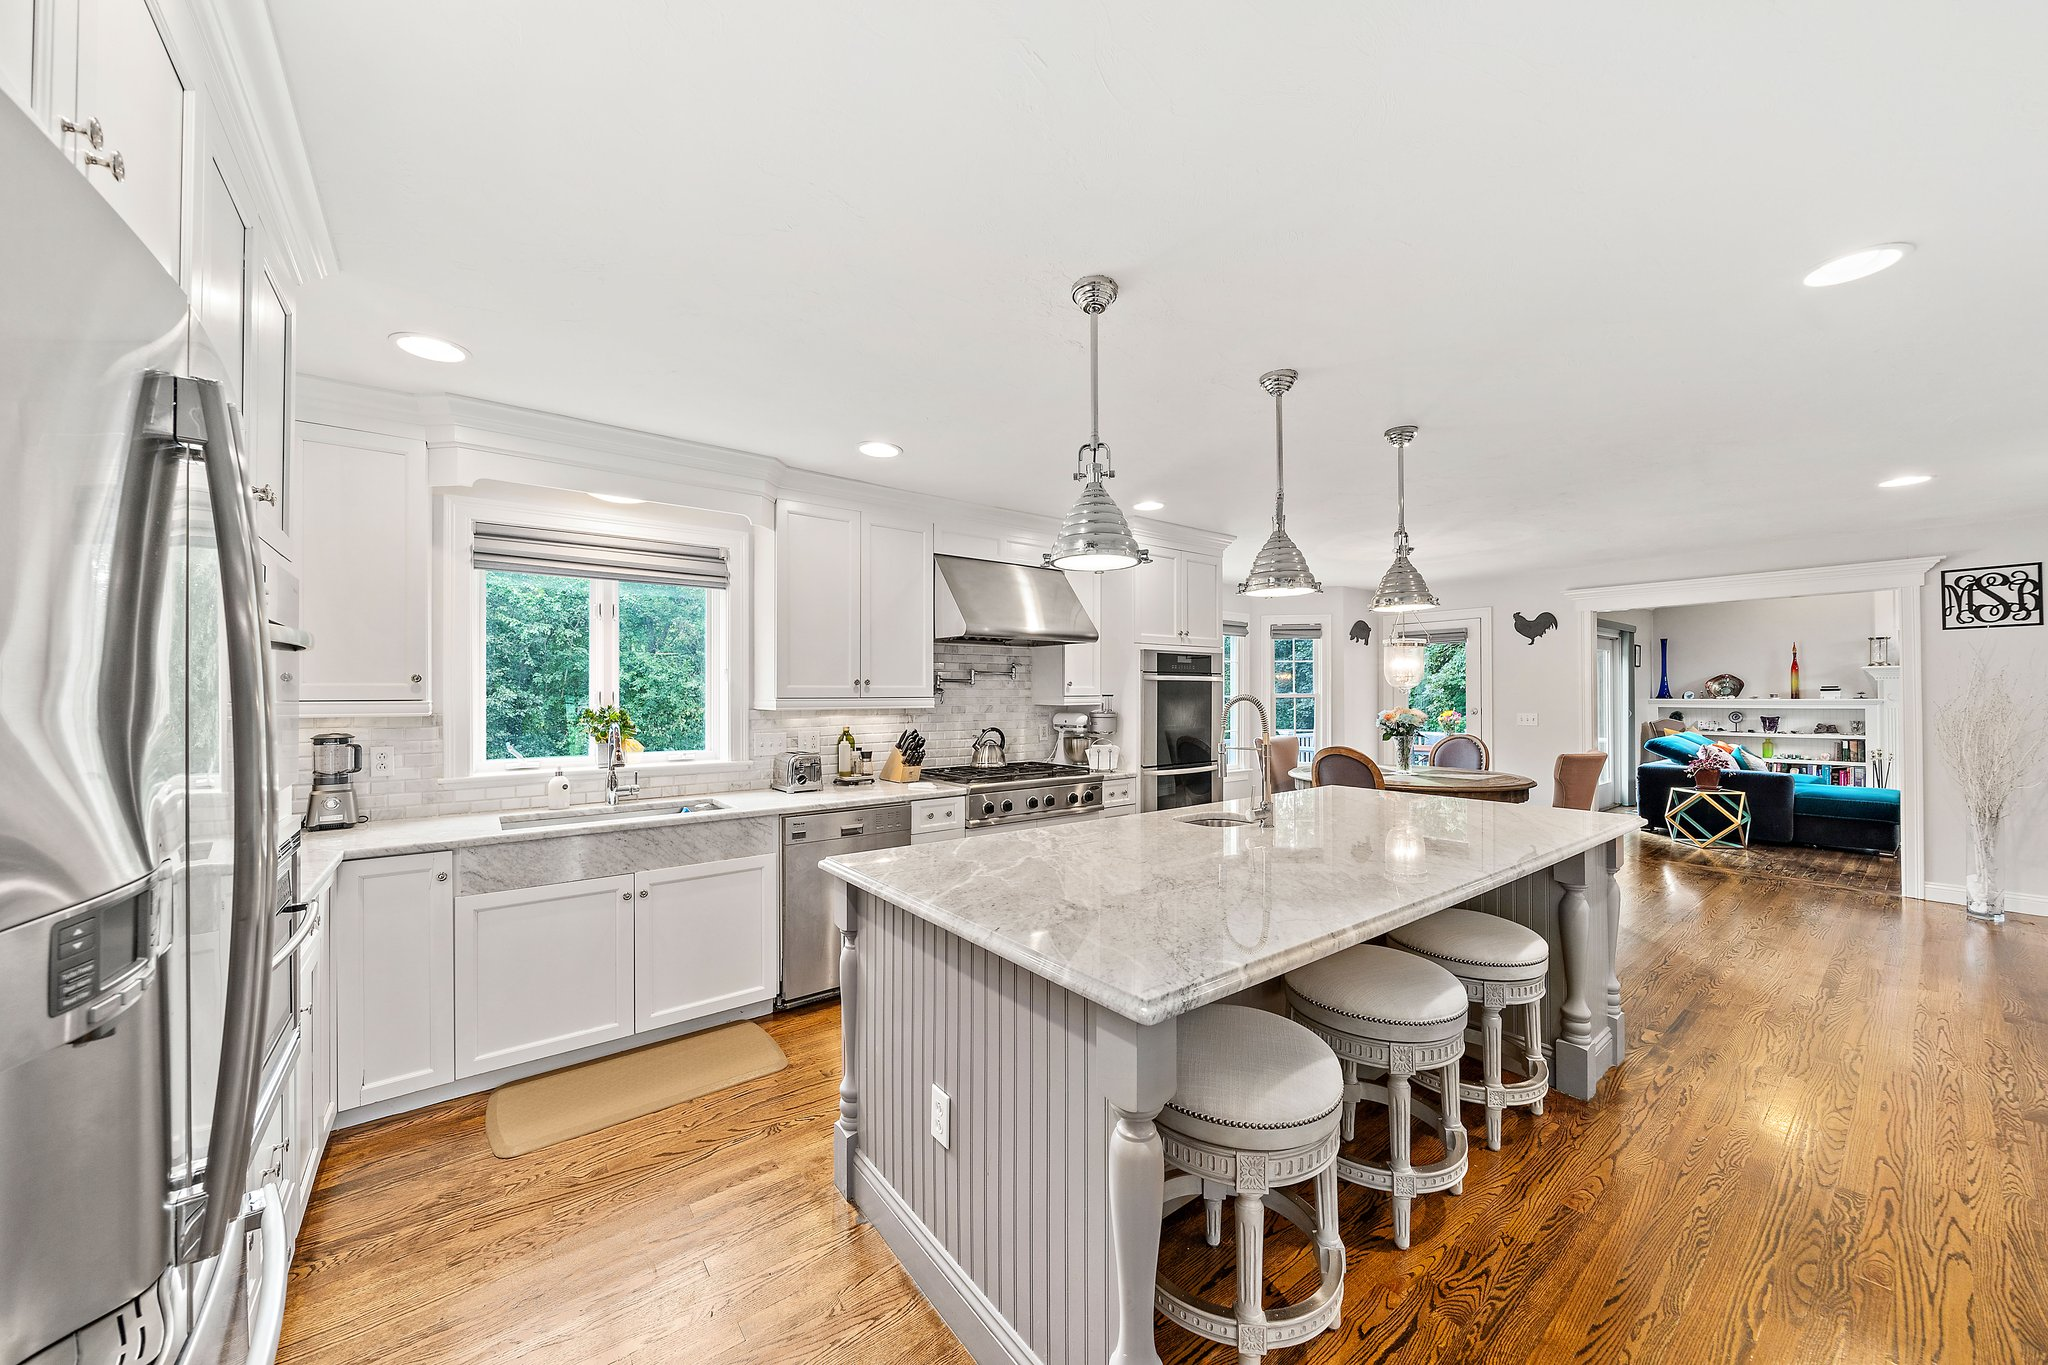 47 Townsend Woods Dr, Hanover, MA 02339, USA Photo 7